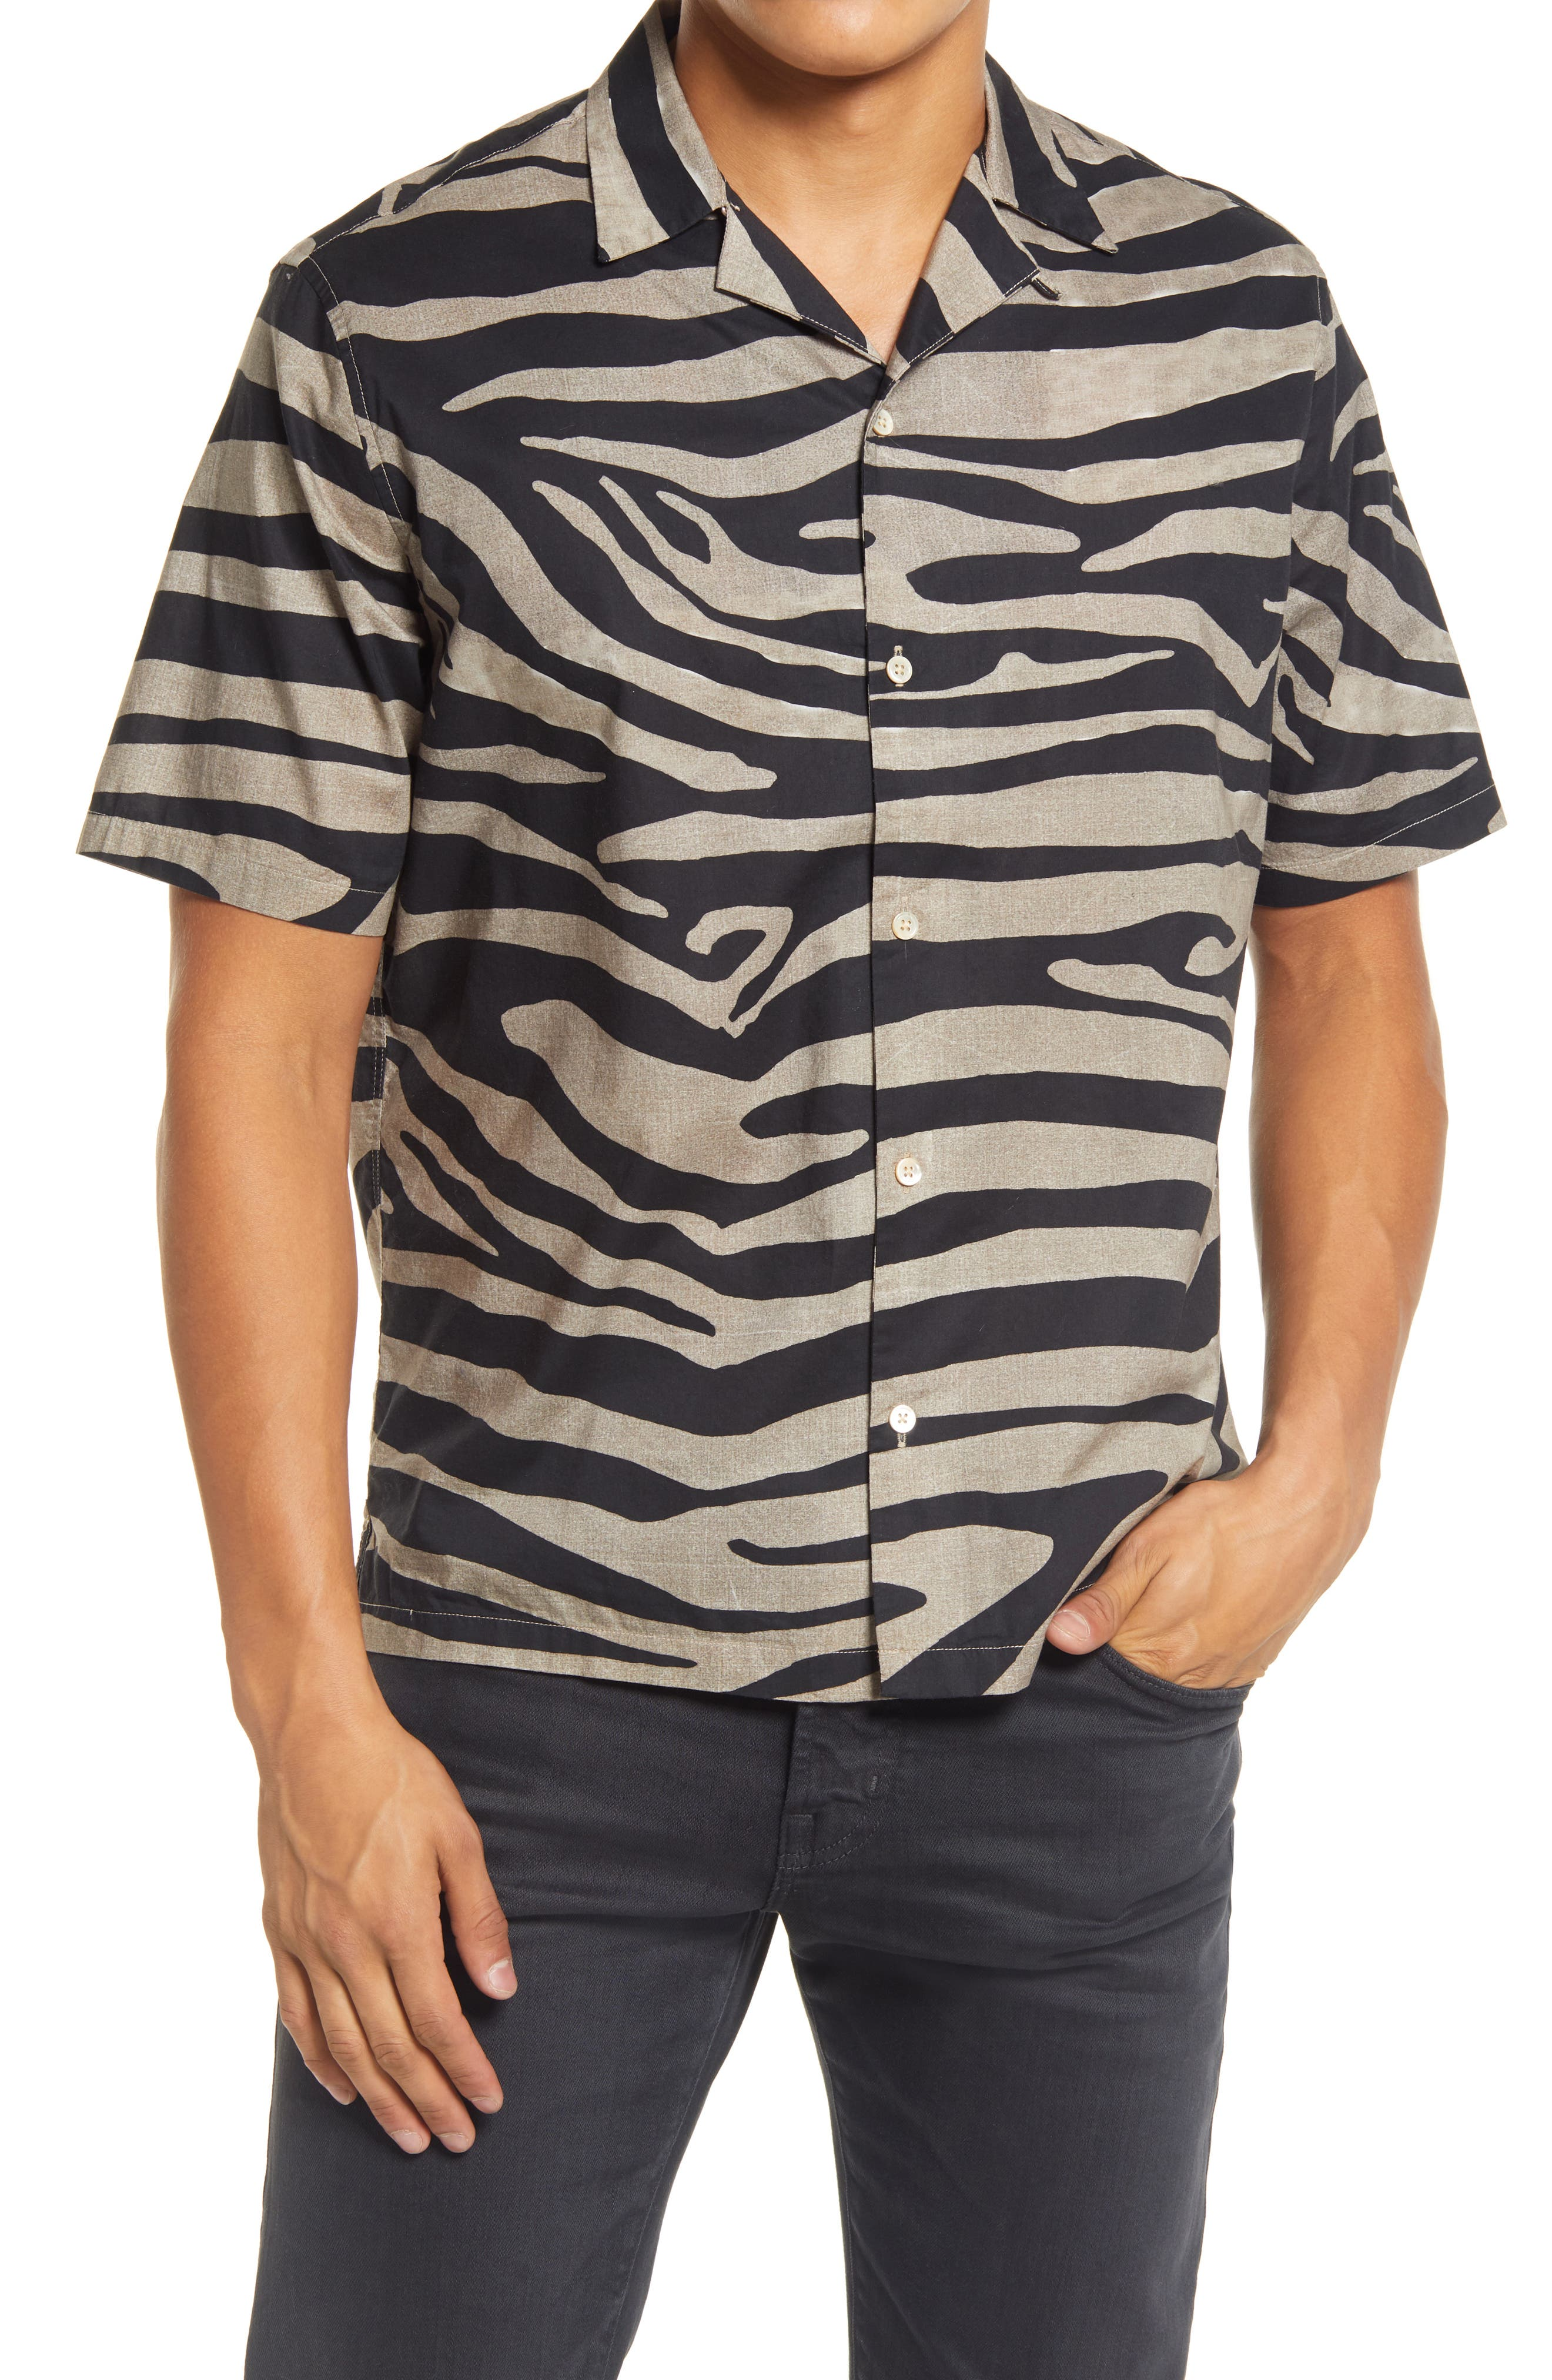 1980s Clothing, Fashion | 80s Style Clothes Mens Allsaints Equus Relaxed Fit Zebra Print Short Sleeve Button-Up Camp Shirt $139.00 AT vintagedancer.com